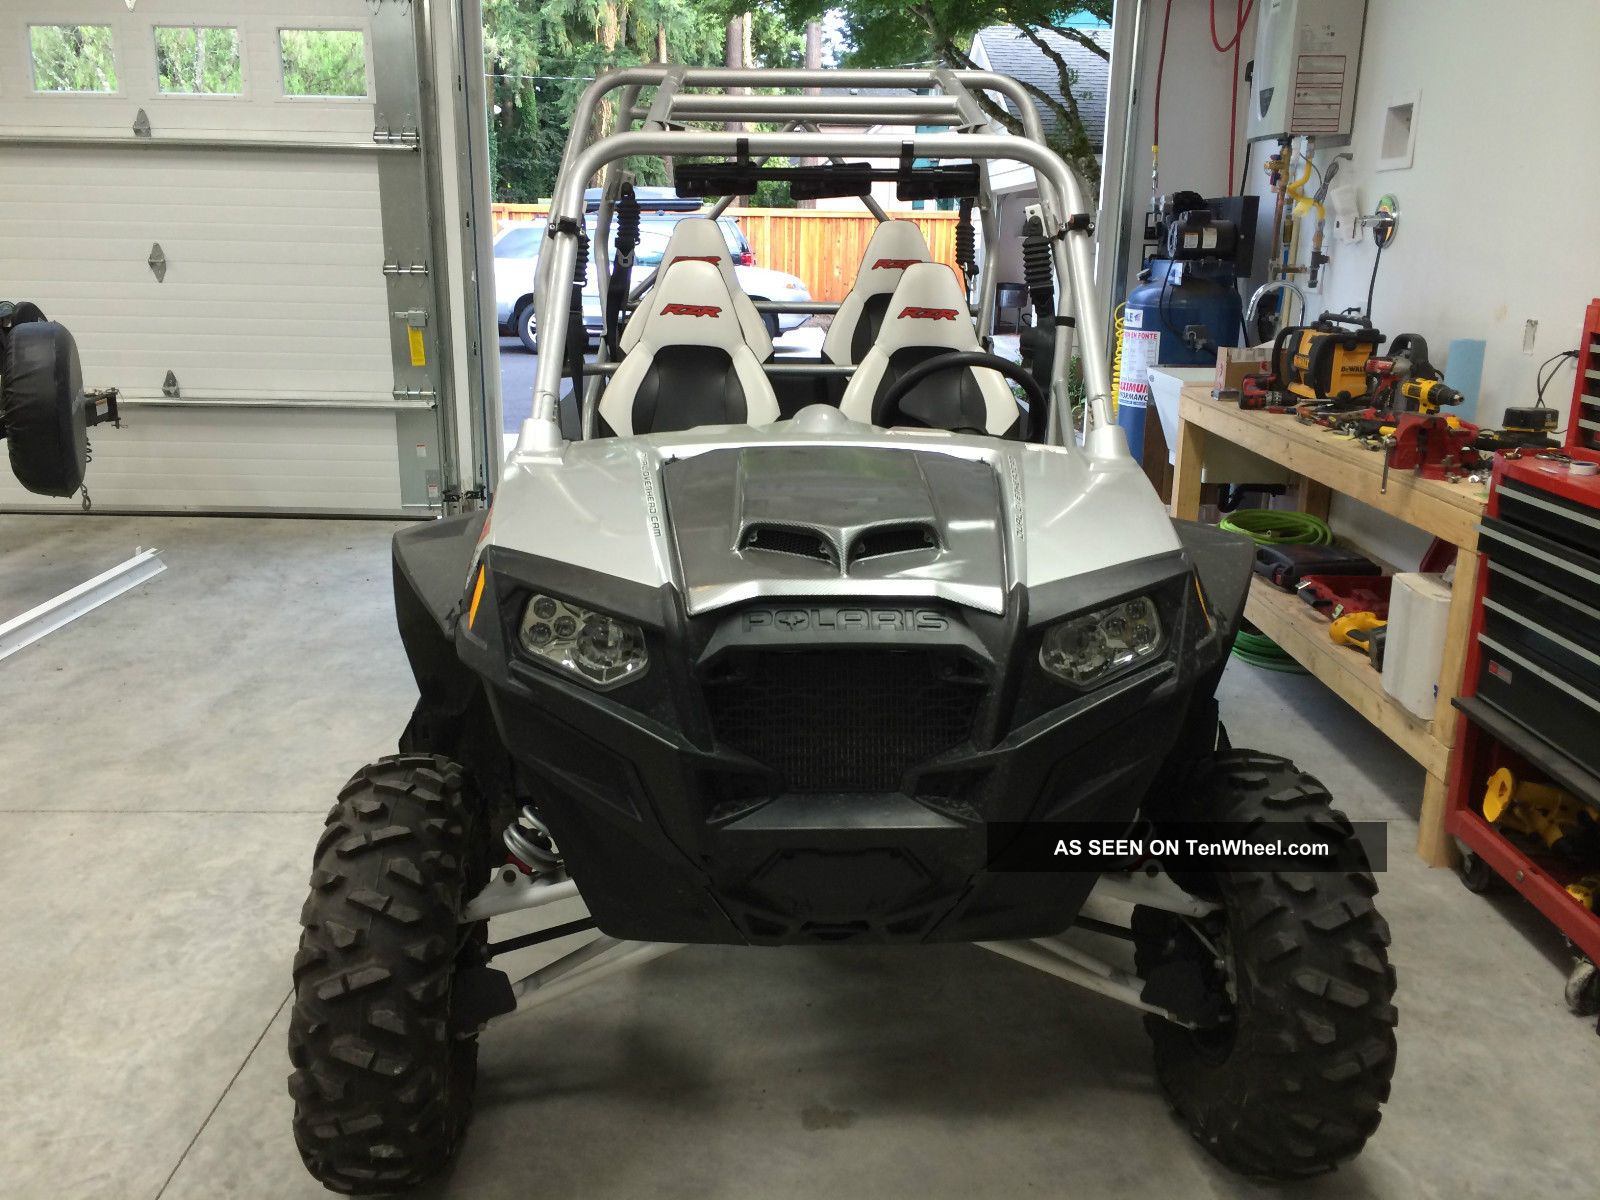 2012 Polaris Rzr4 900xp Le UTVs photo